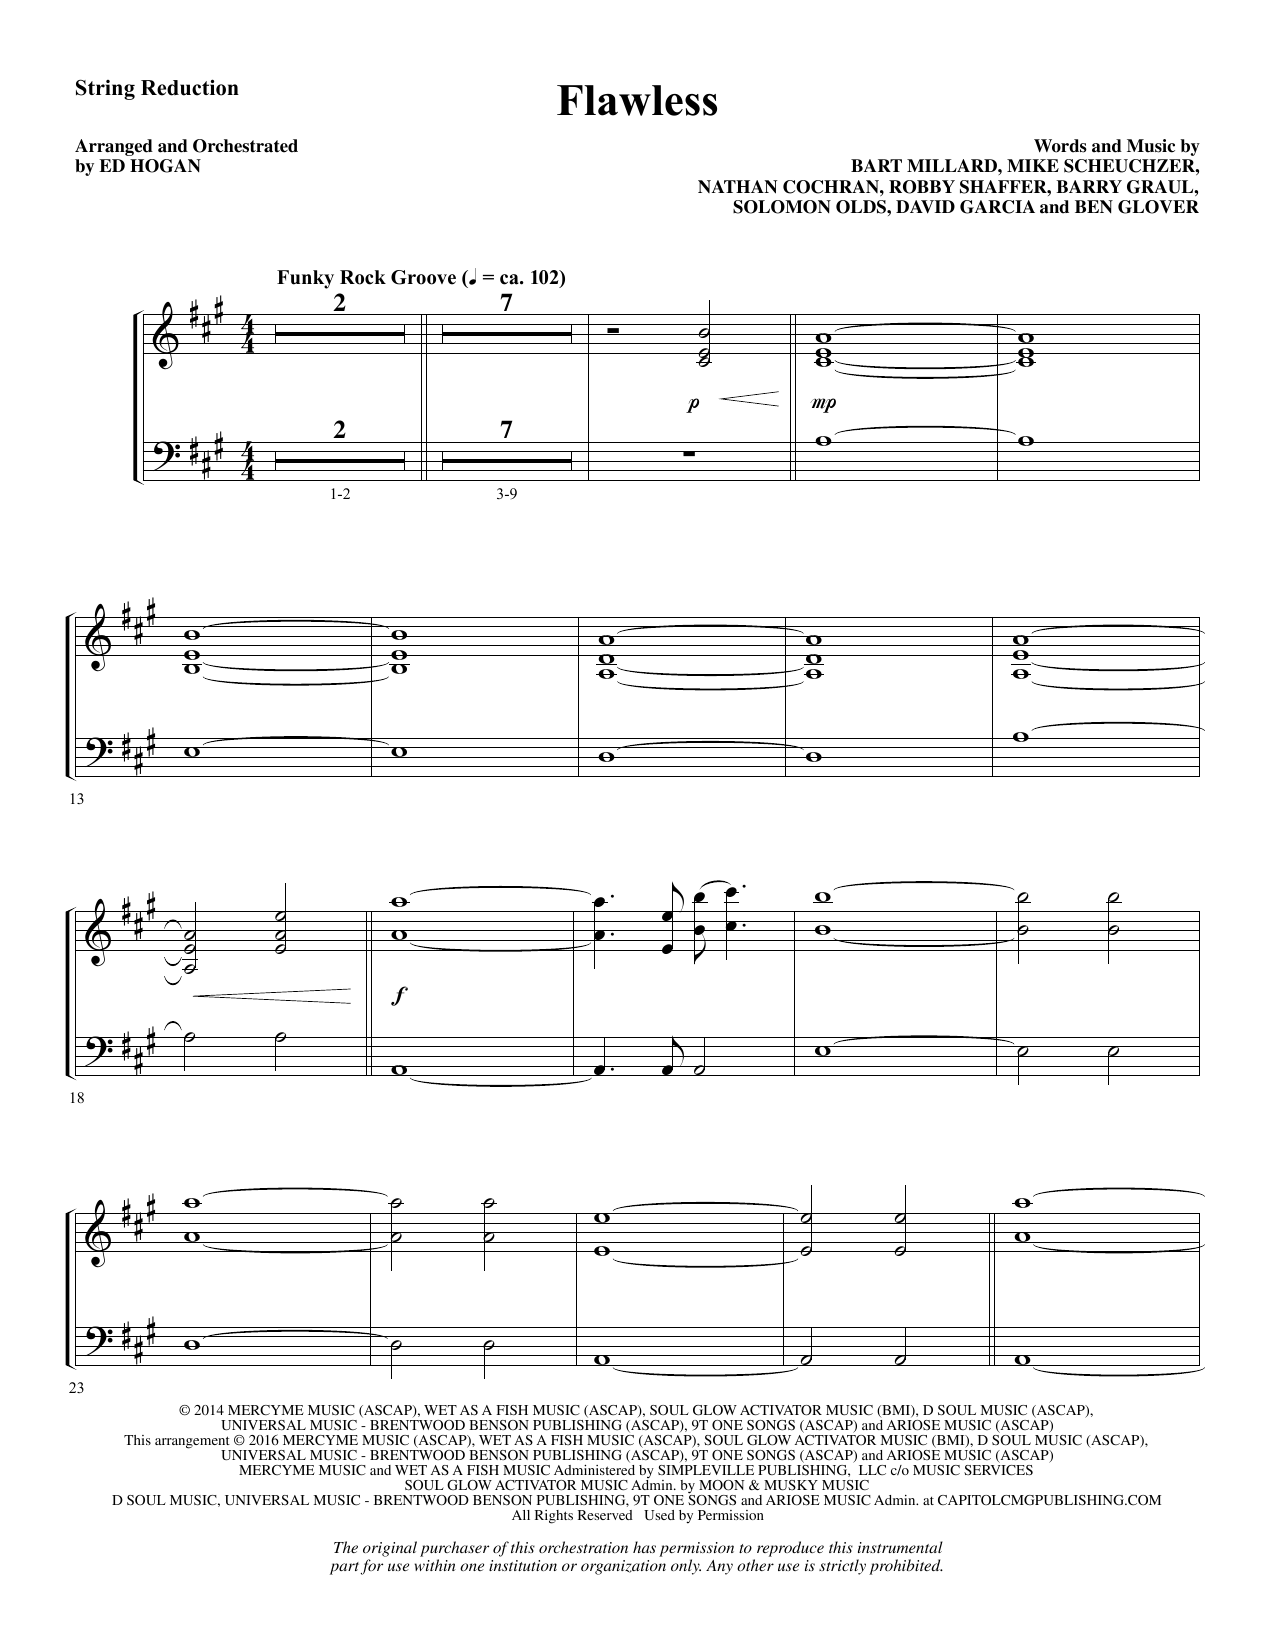 Flawless - Keyboard String Reduction Sheet Music